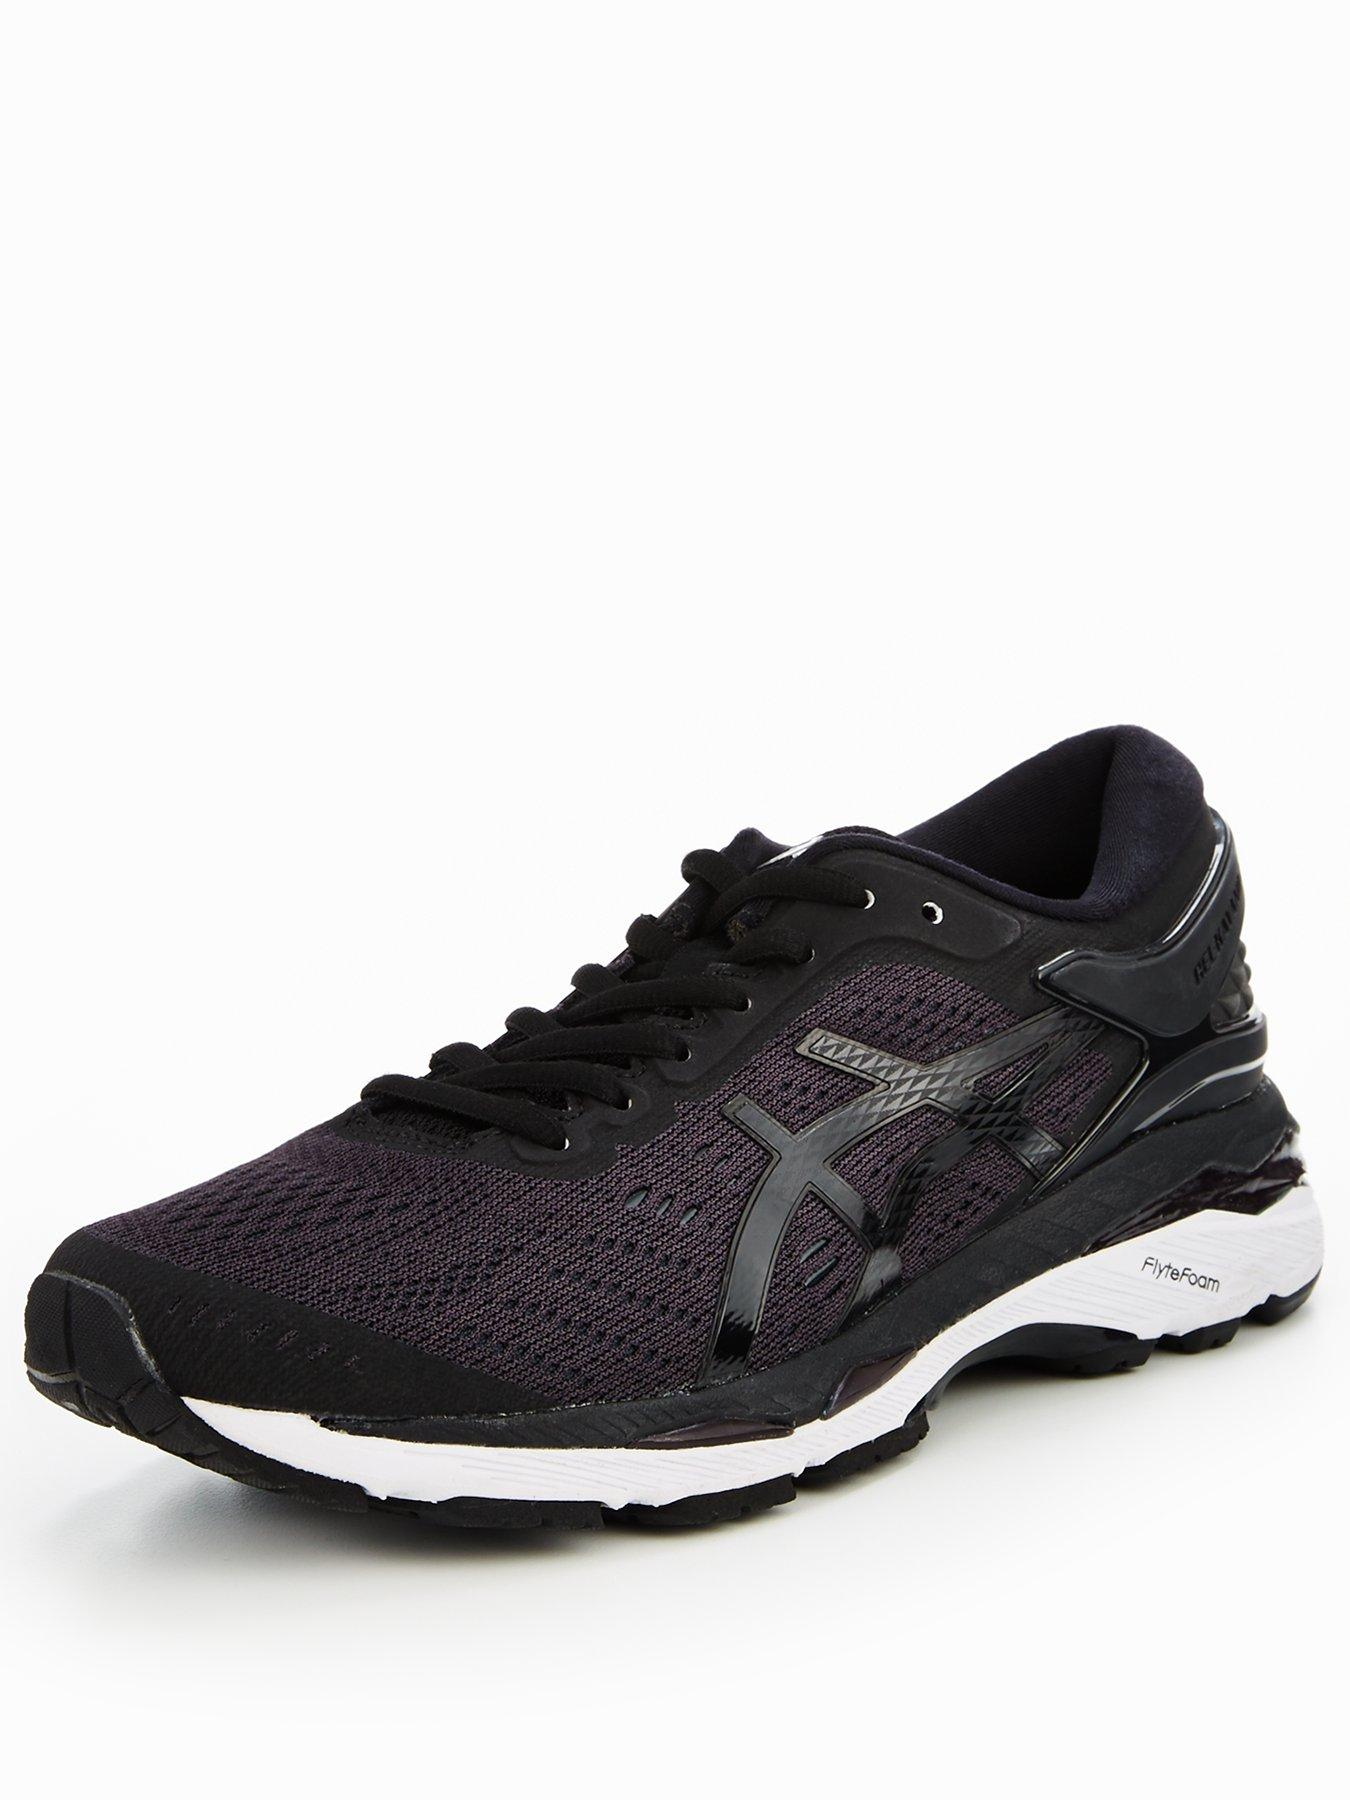 fdd6fc9f390b ... hot asics gel kayano 24 black 4285e 2ad4d